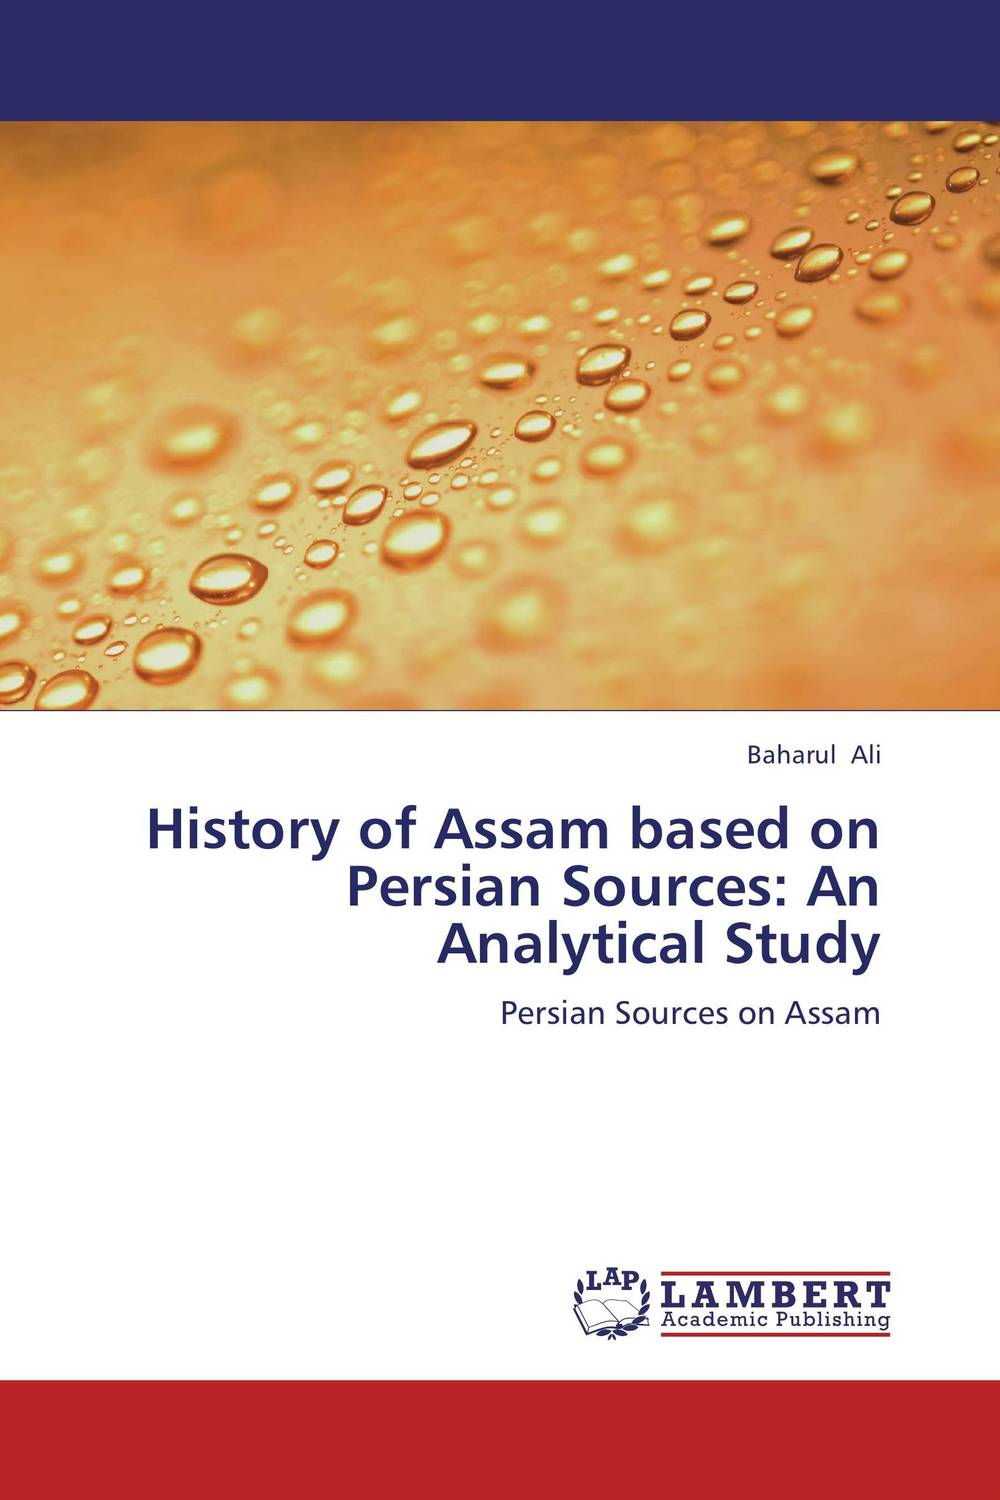 History of Assam based on Persian Sources: An Analytical Study pooria alirezazadeh an analytical study of translation of stream of consciousness